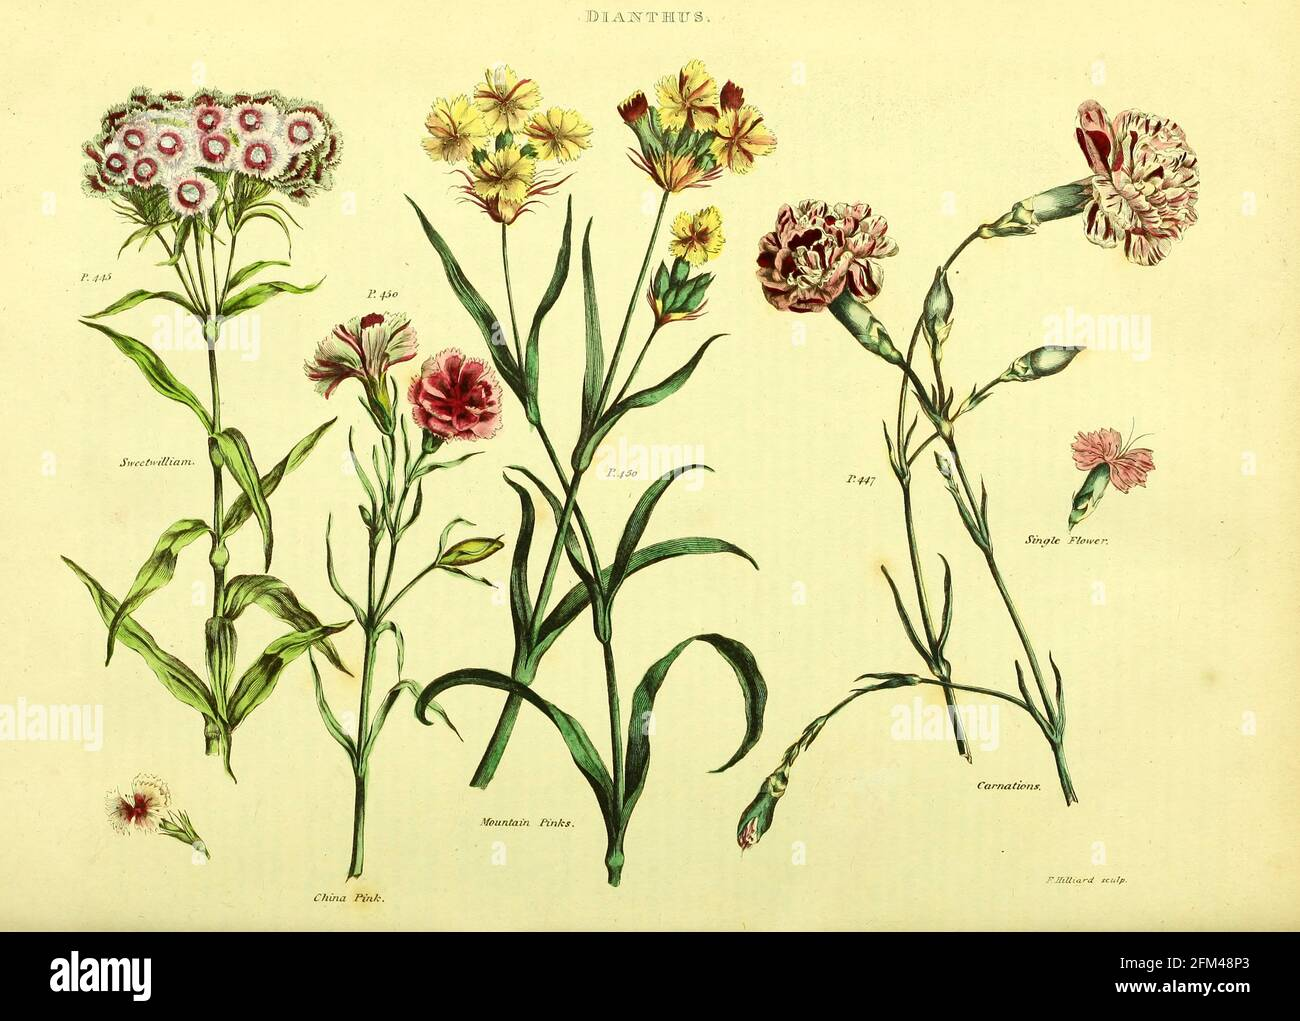 Dianthus (Carnations) from Vol 1 of the book The universal herbal : or botanical, medical and agricultural dictionary : containing an account of all known plants in the world, arranged according to the Linnean system. Specifying the uses to which they are or may be applied By Thomas Green,  Published in 1816 by Nuttall, Fisher & Co. in Liverpool and Printed at the Caxton Press by H. Fisher Stock Photo